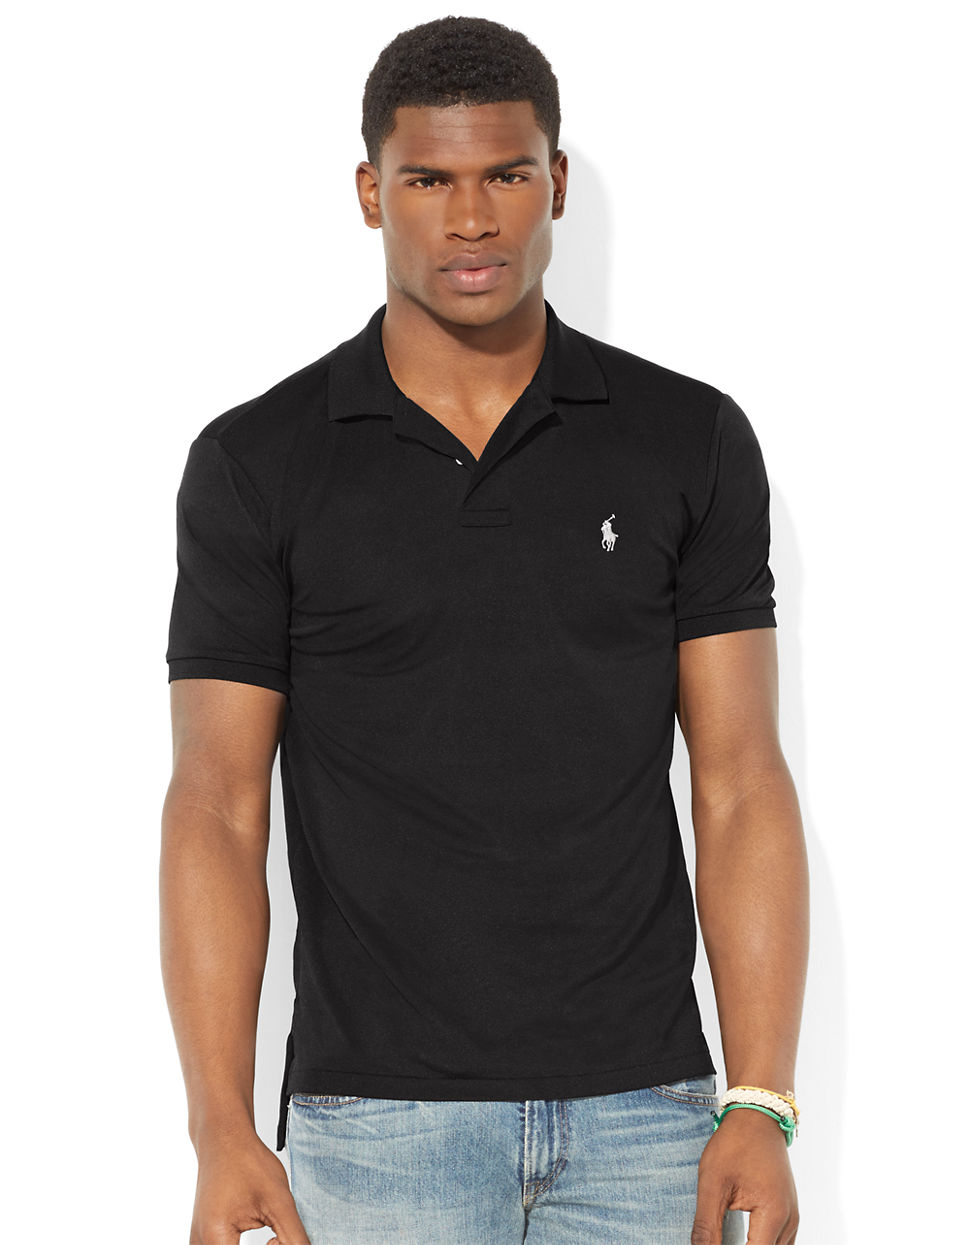 Polo ralph lauren performance mesh polo shirt in black for for Man in polo shirt